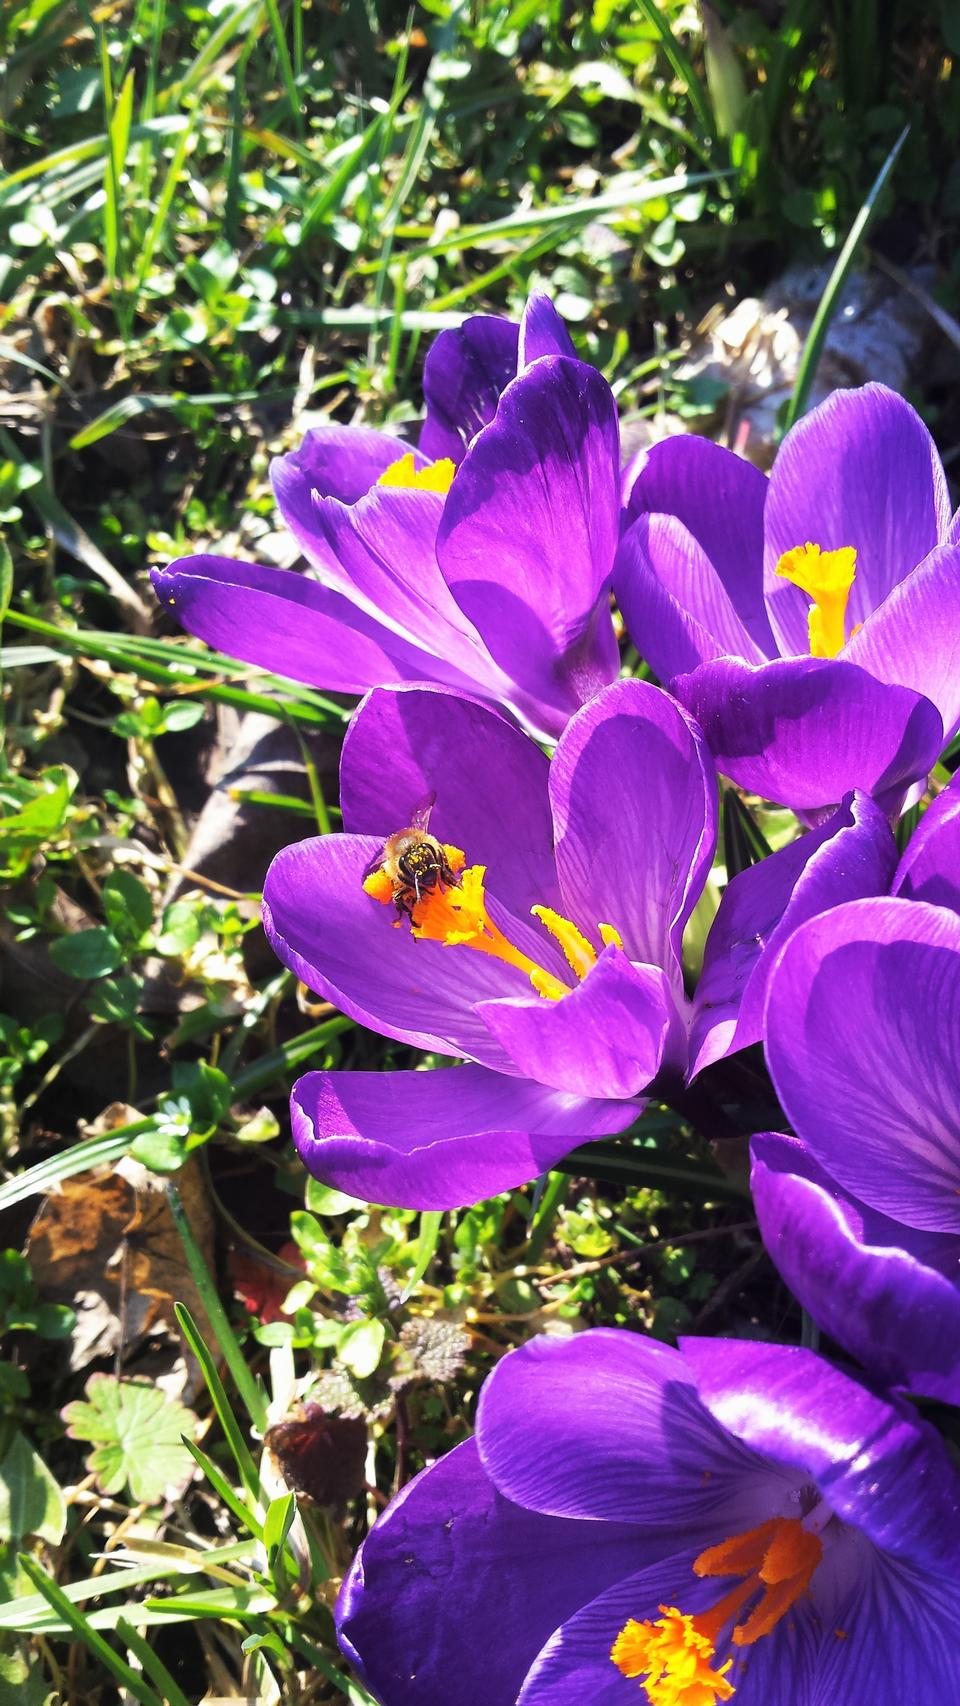 Bumble Bee on First Spring Flowers